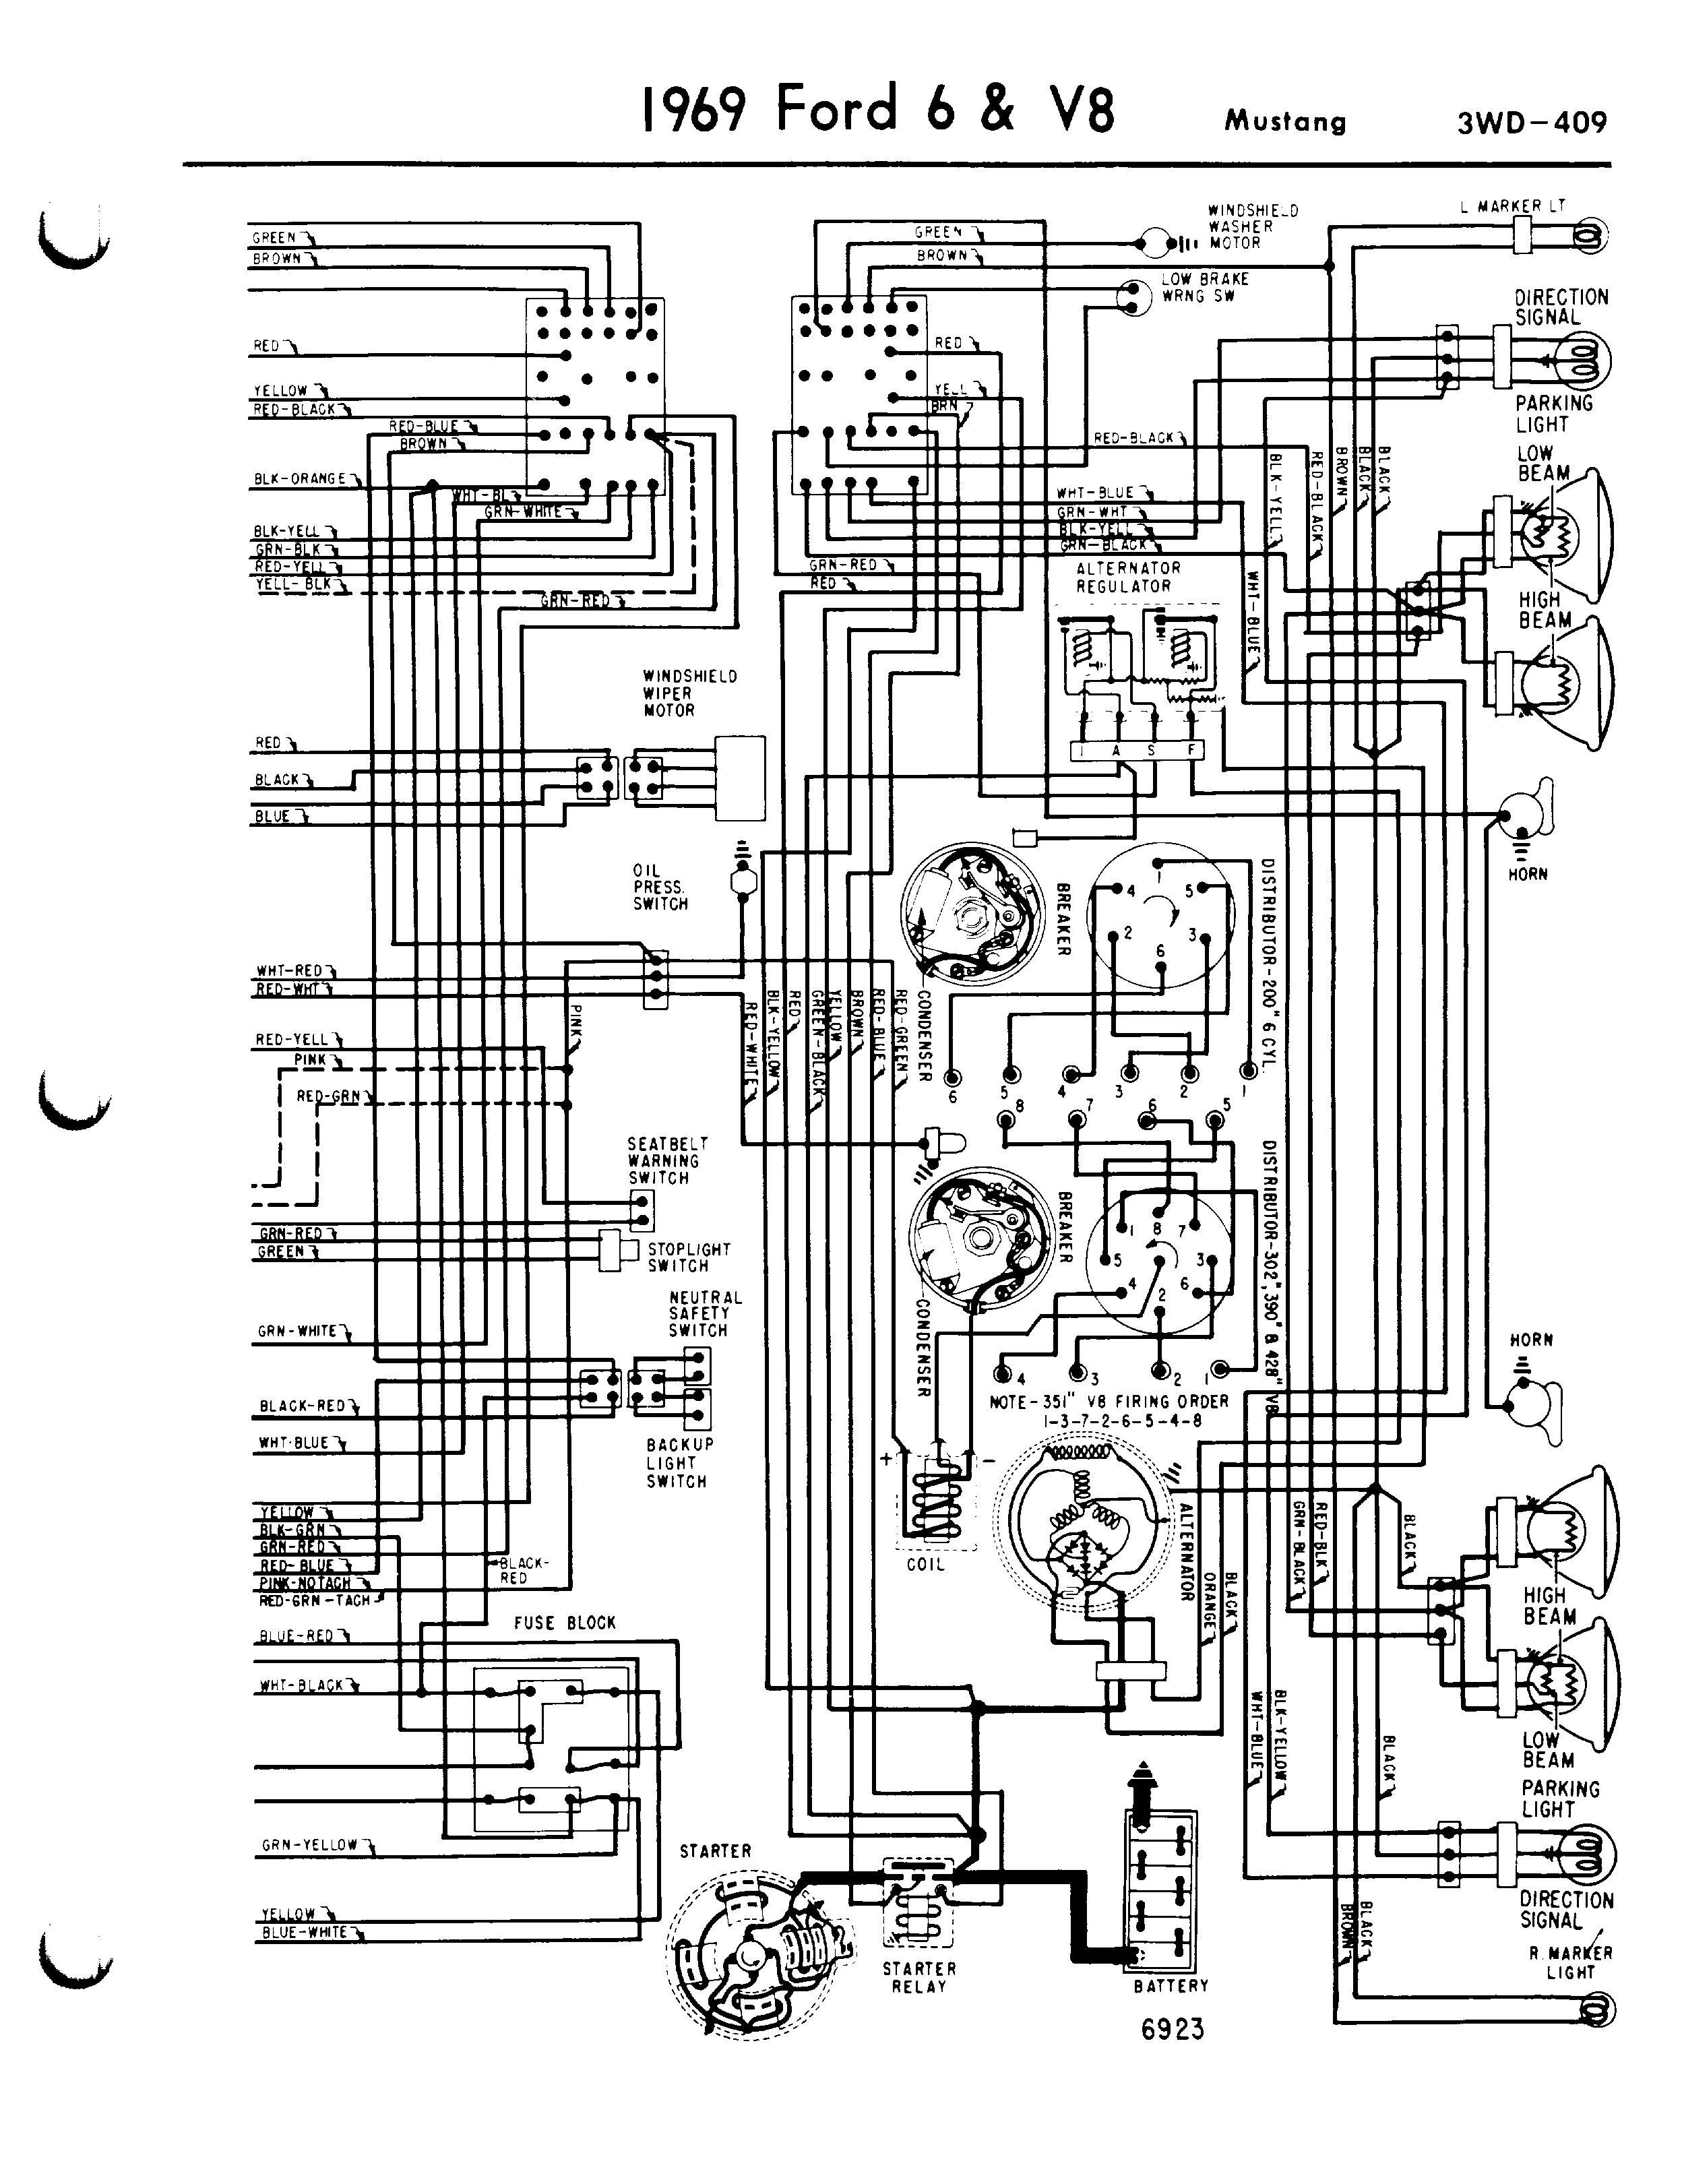 2001 Ford Focus Wiring Diagram In 2021 Mustang Engine Wiring Diagram Engine Diagram